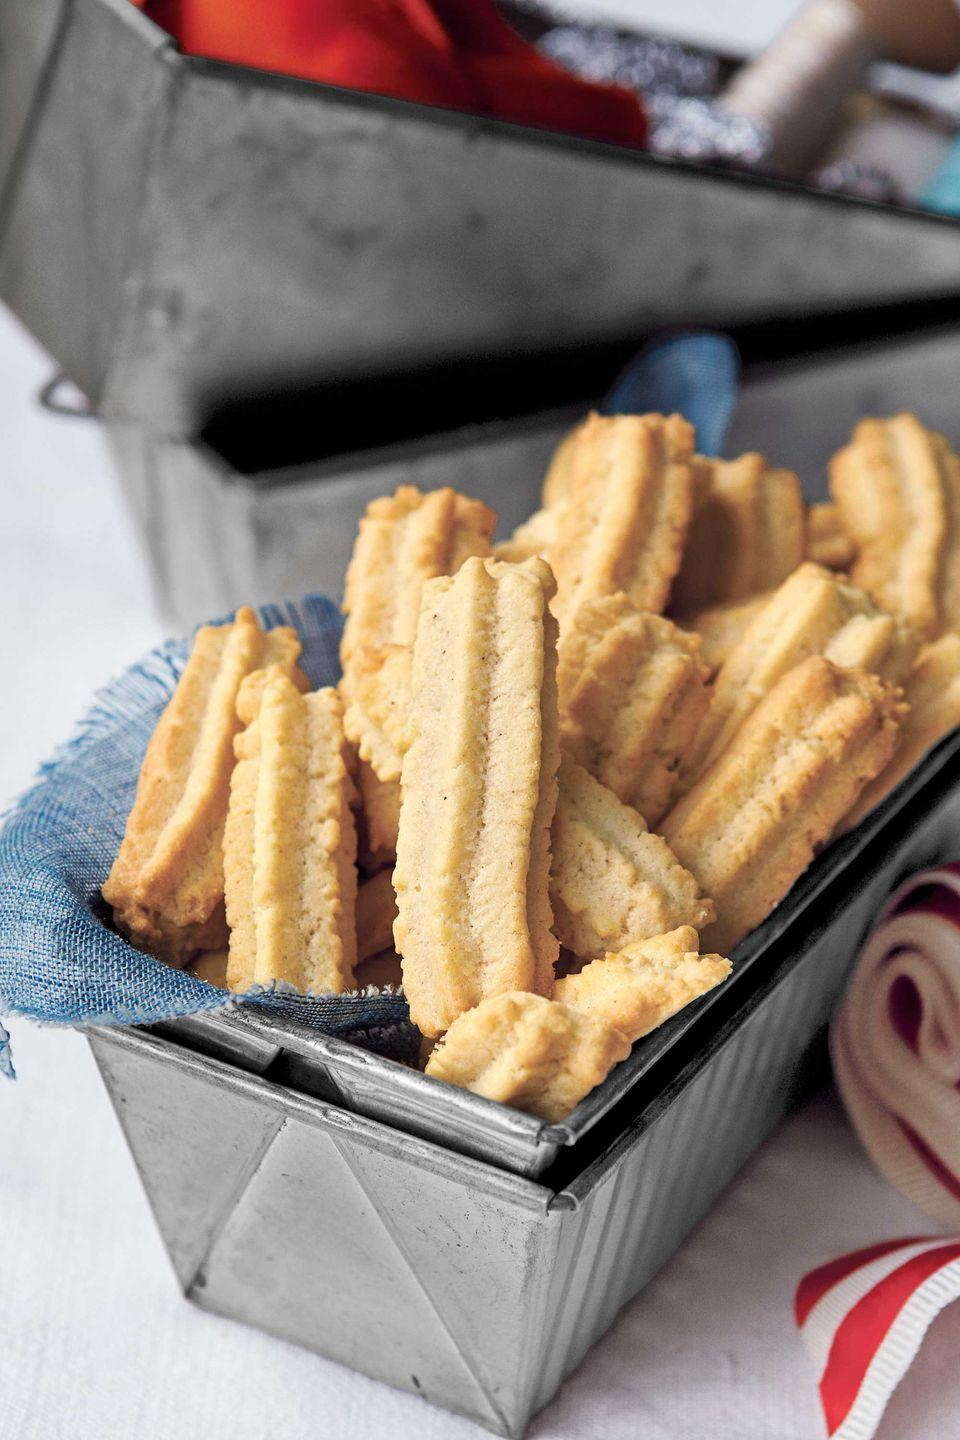 """<p>These simple piped delights contain a secret ingredient: ground cloves! Mild and savory, these cookies taste fantastic with coffee—consider wrapping them up with a bag of roast beans. </p><p><strong><a href=""""https://www.countryliving.com/food-drinks/recipes/a4095/nana-cookies-recipe-clx1211/"""" rel=""""nofollow noopener"""" target=""""_blank"""" data-ylk=""""slk:Get the recipe"""" class=""""link rapid-noclick-resp"""">Get the recipe</a>.</strong></p>"""